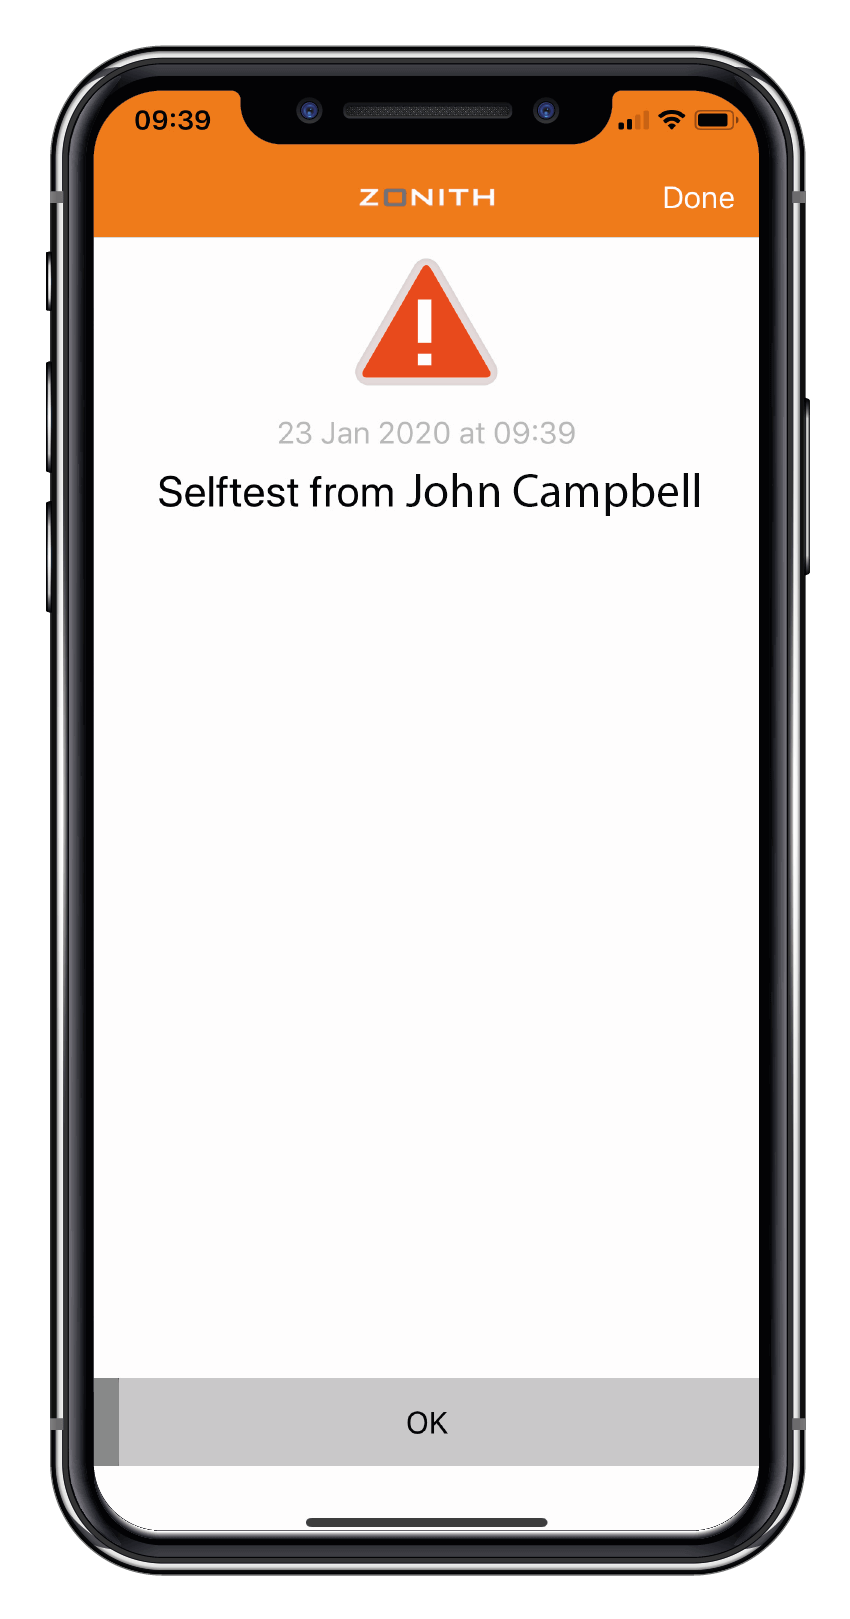 ZONITH App Self-Test Done